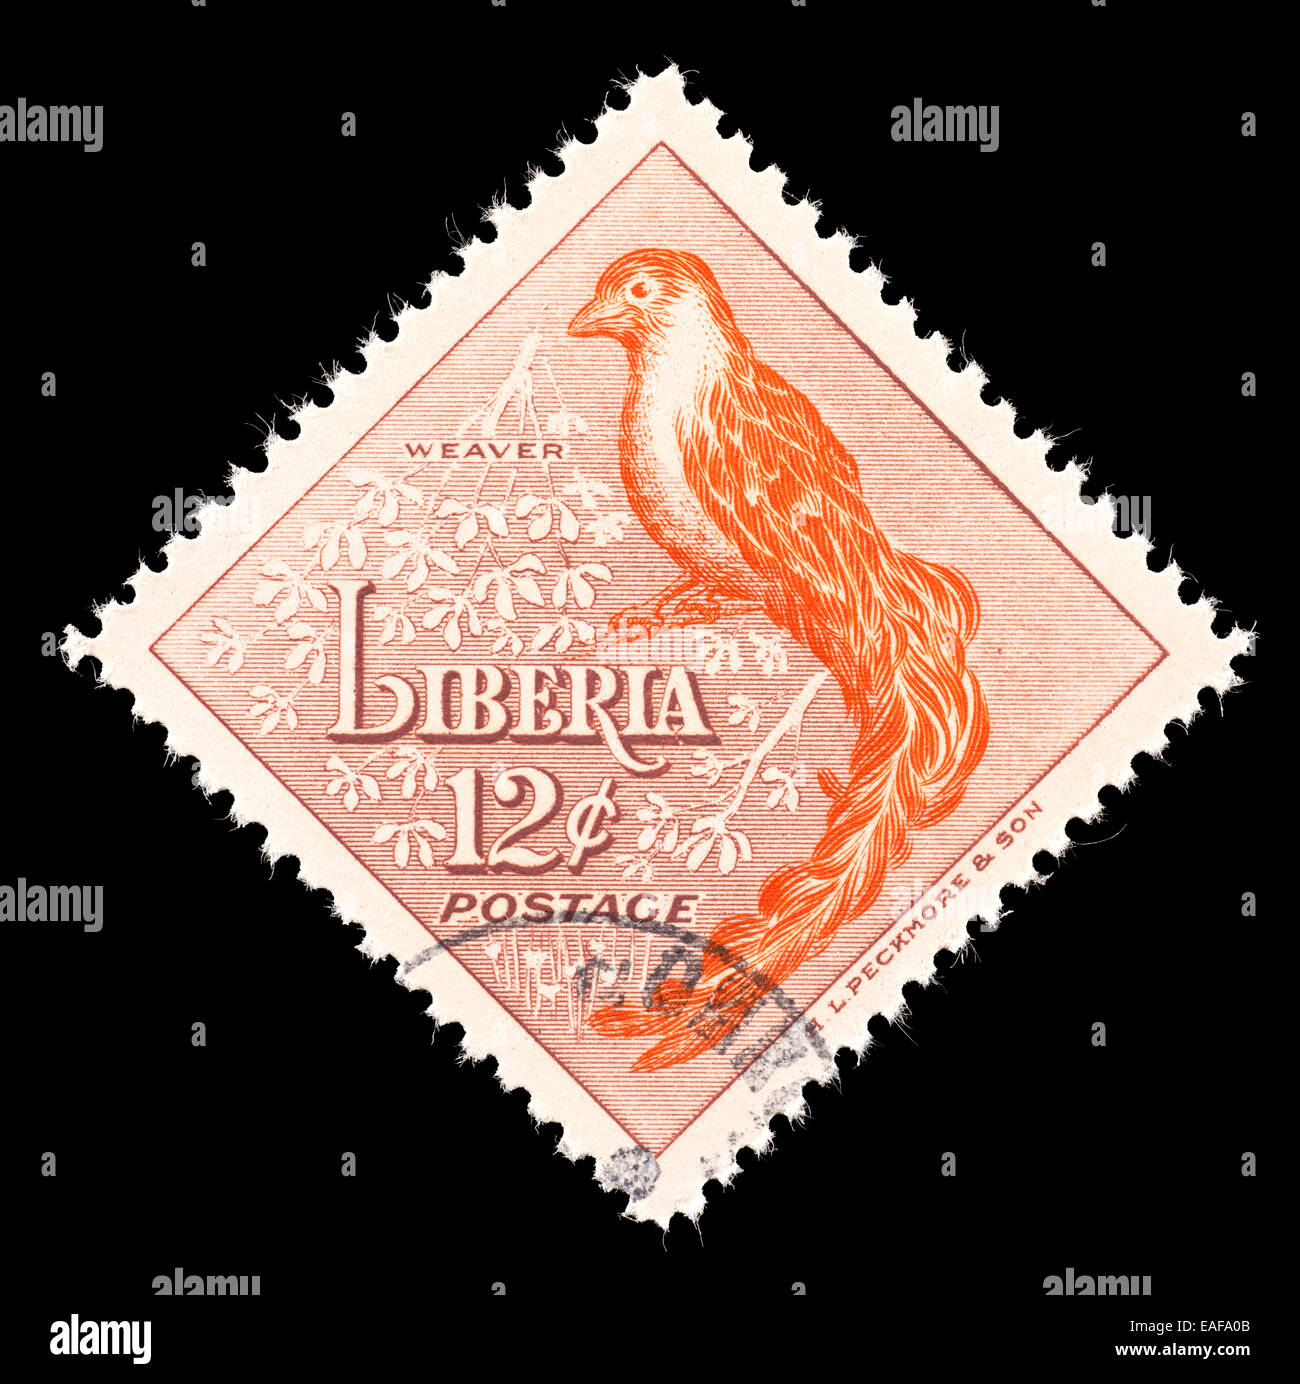 Postage stamp from Liberia depicting a weaver bird. - Stock Image